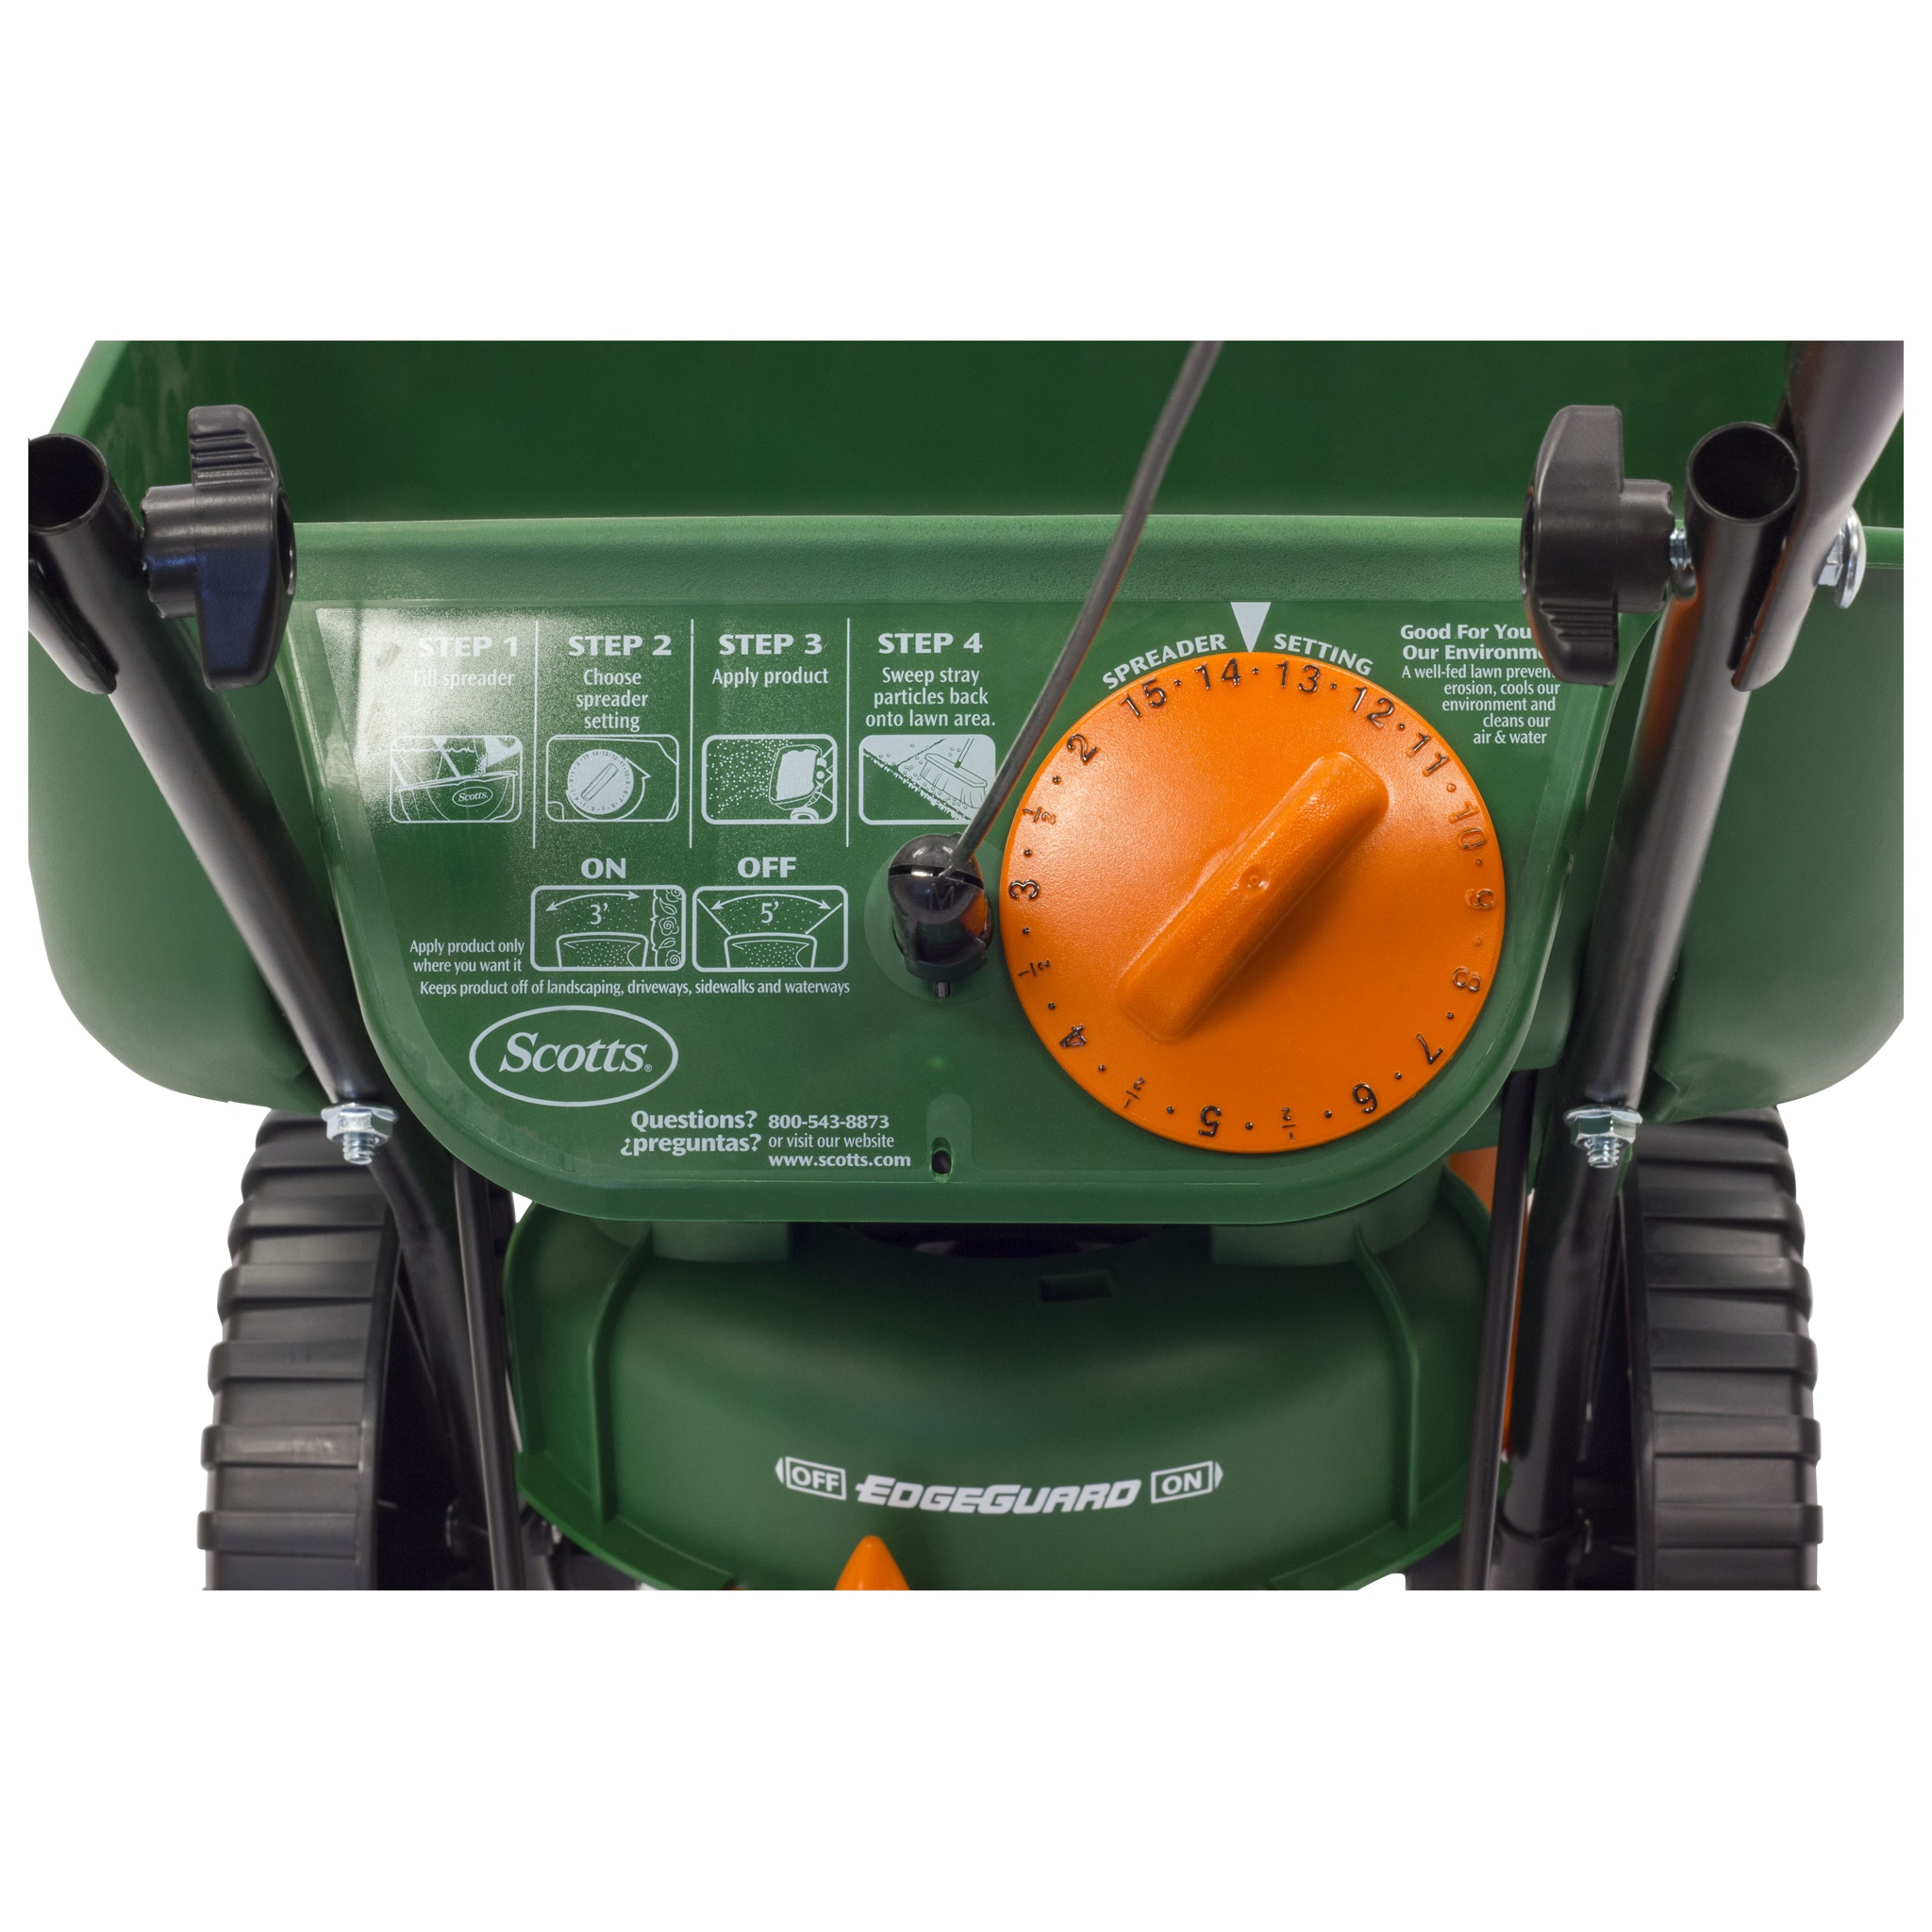 Scotts Turf Builder Edgeguard Mini Broadcast Spreader Alternate Image 1 2